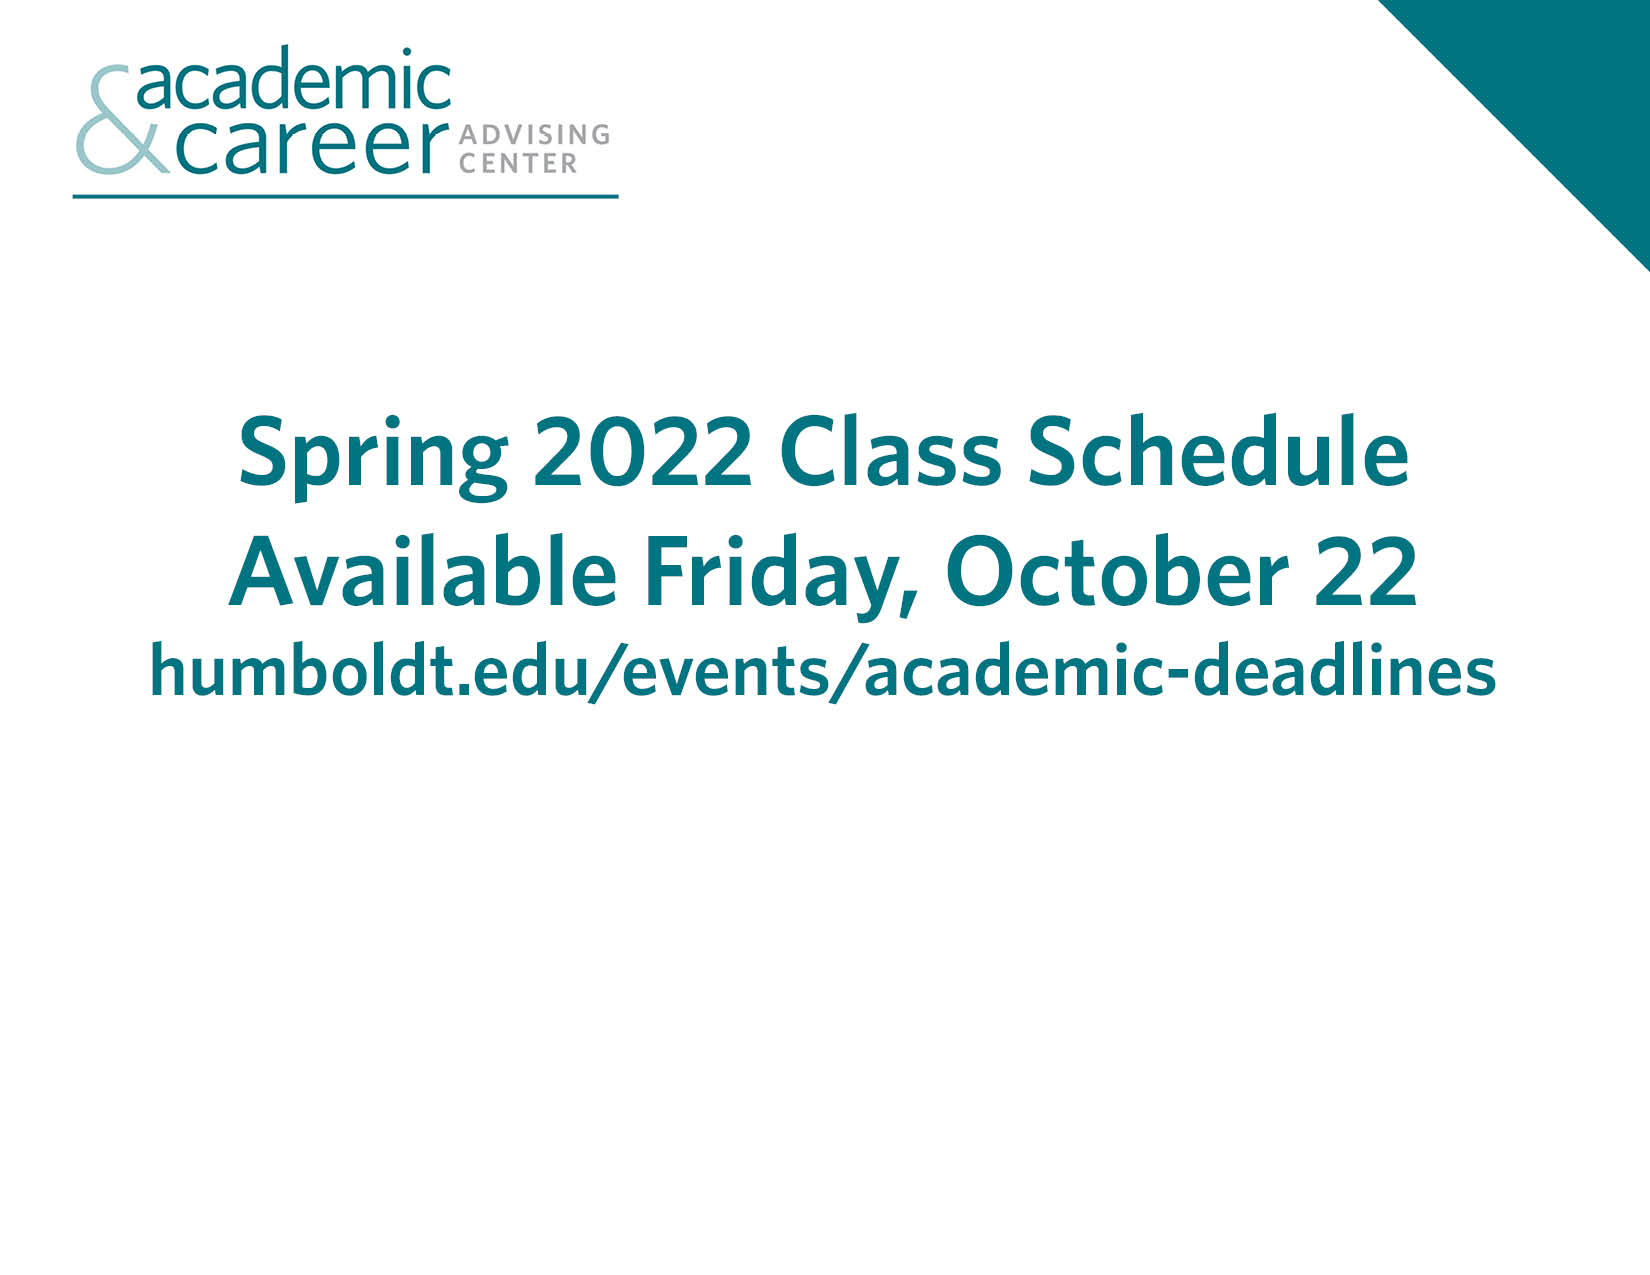 Spring 2022 Class Schedule available october 22